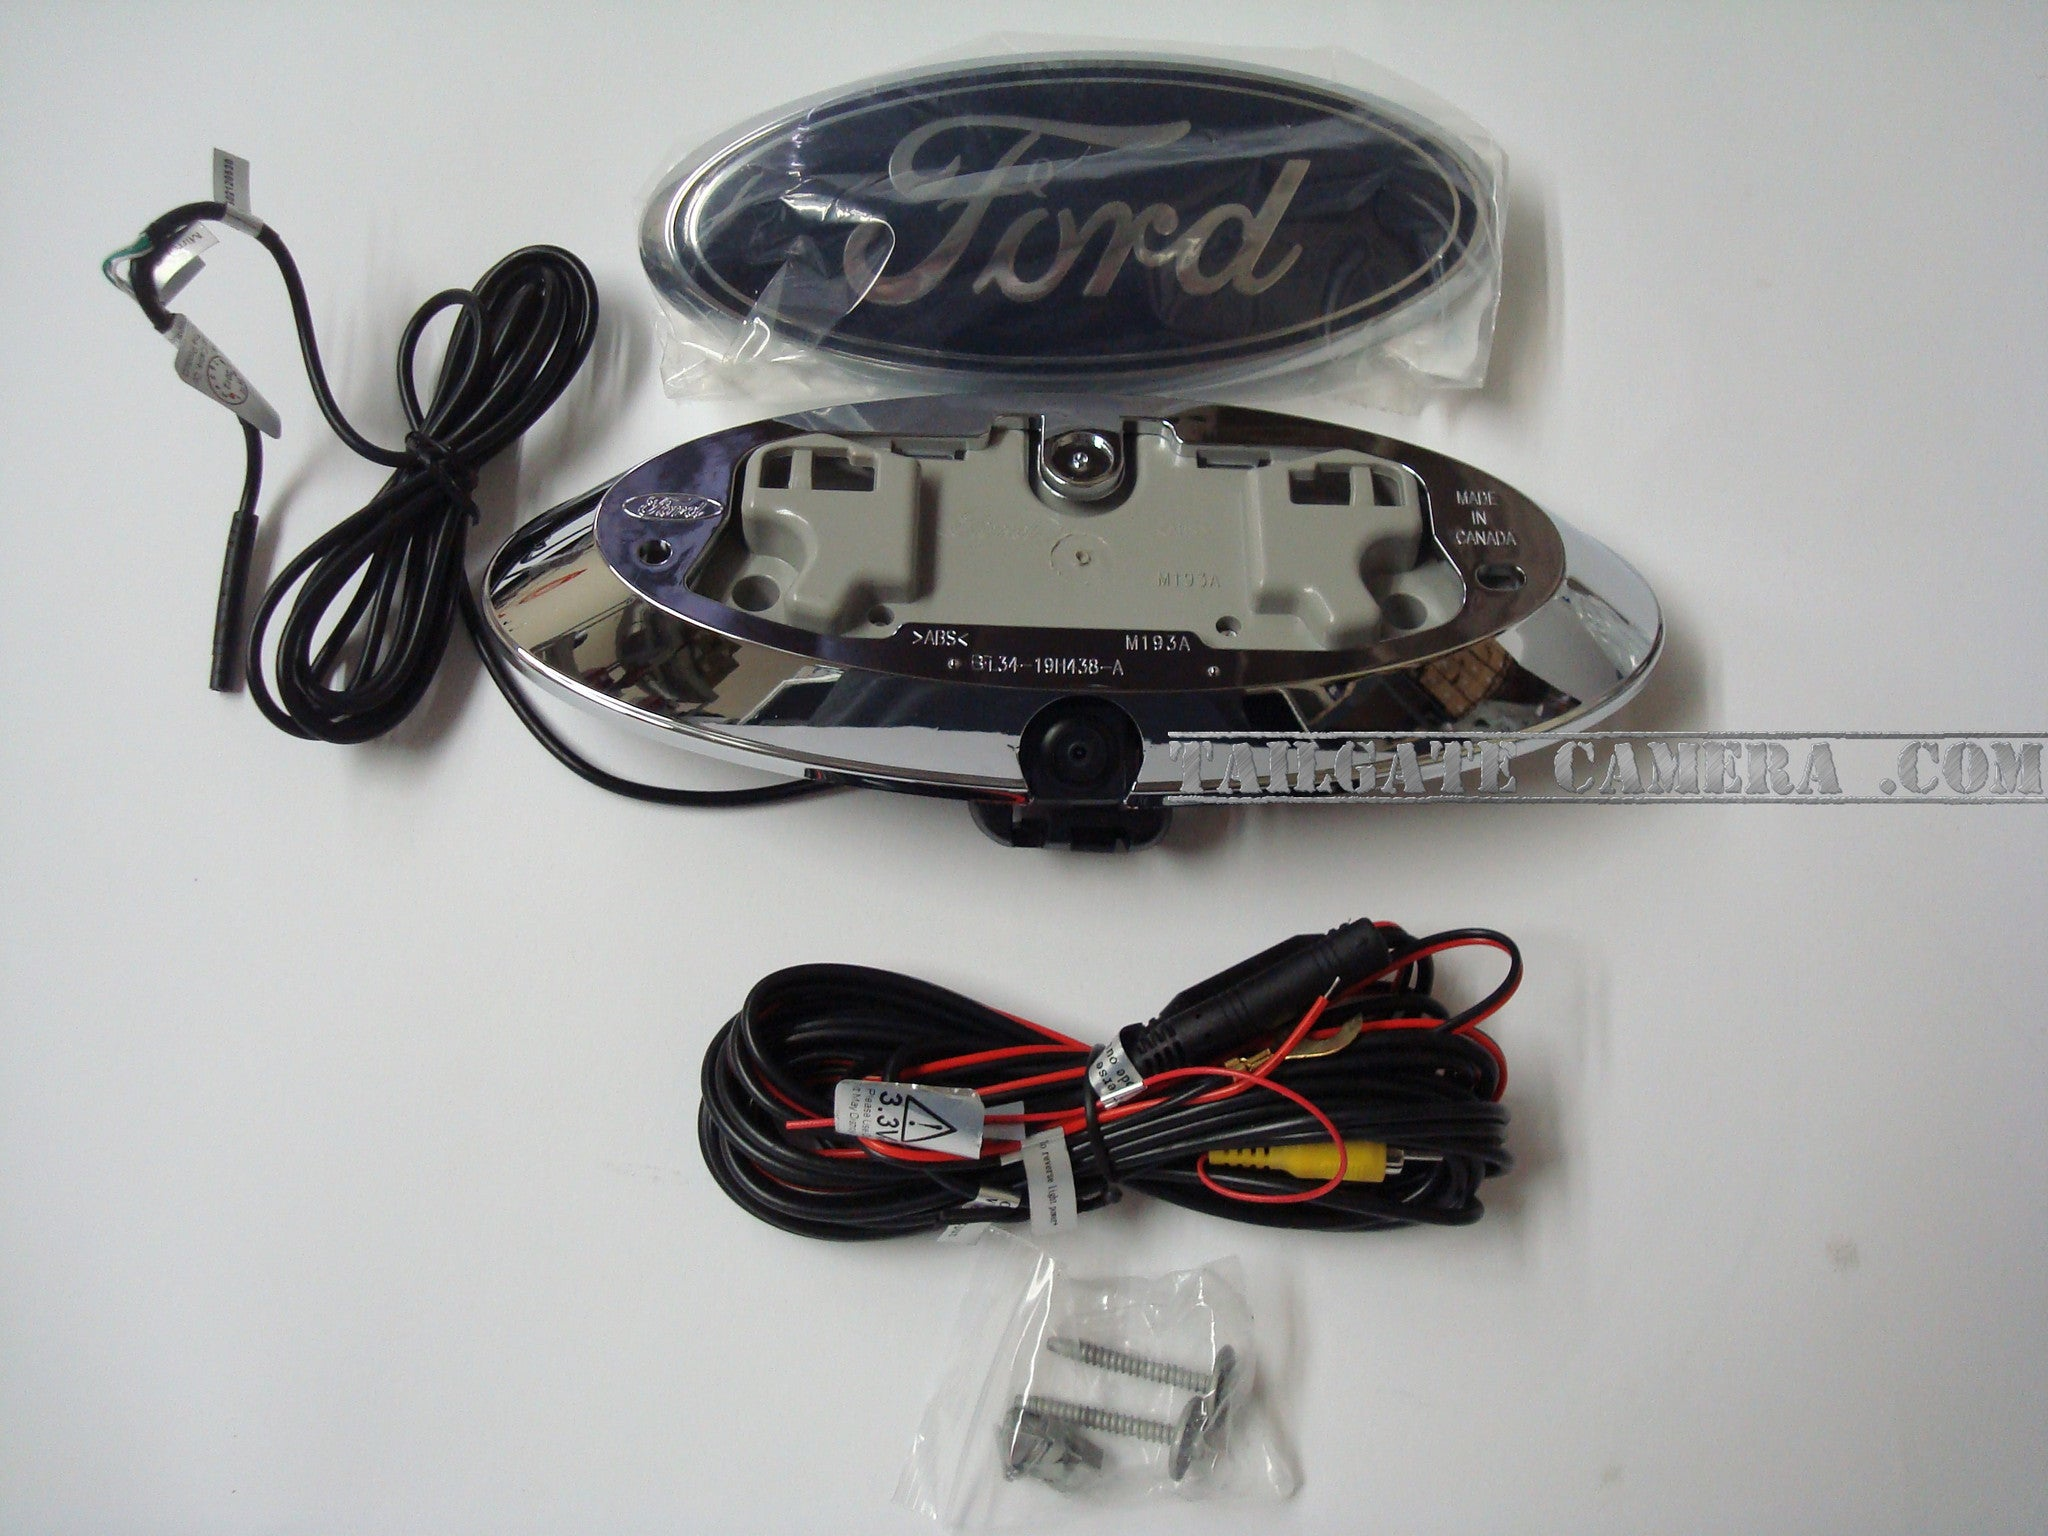 Ford F-Series truck  F150, F250, F350 backup camera with Night Vision Technology - OEM Ford Bezel, replaces factory tailgate emblem - Backup Camera